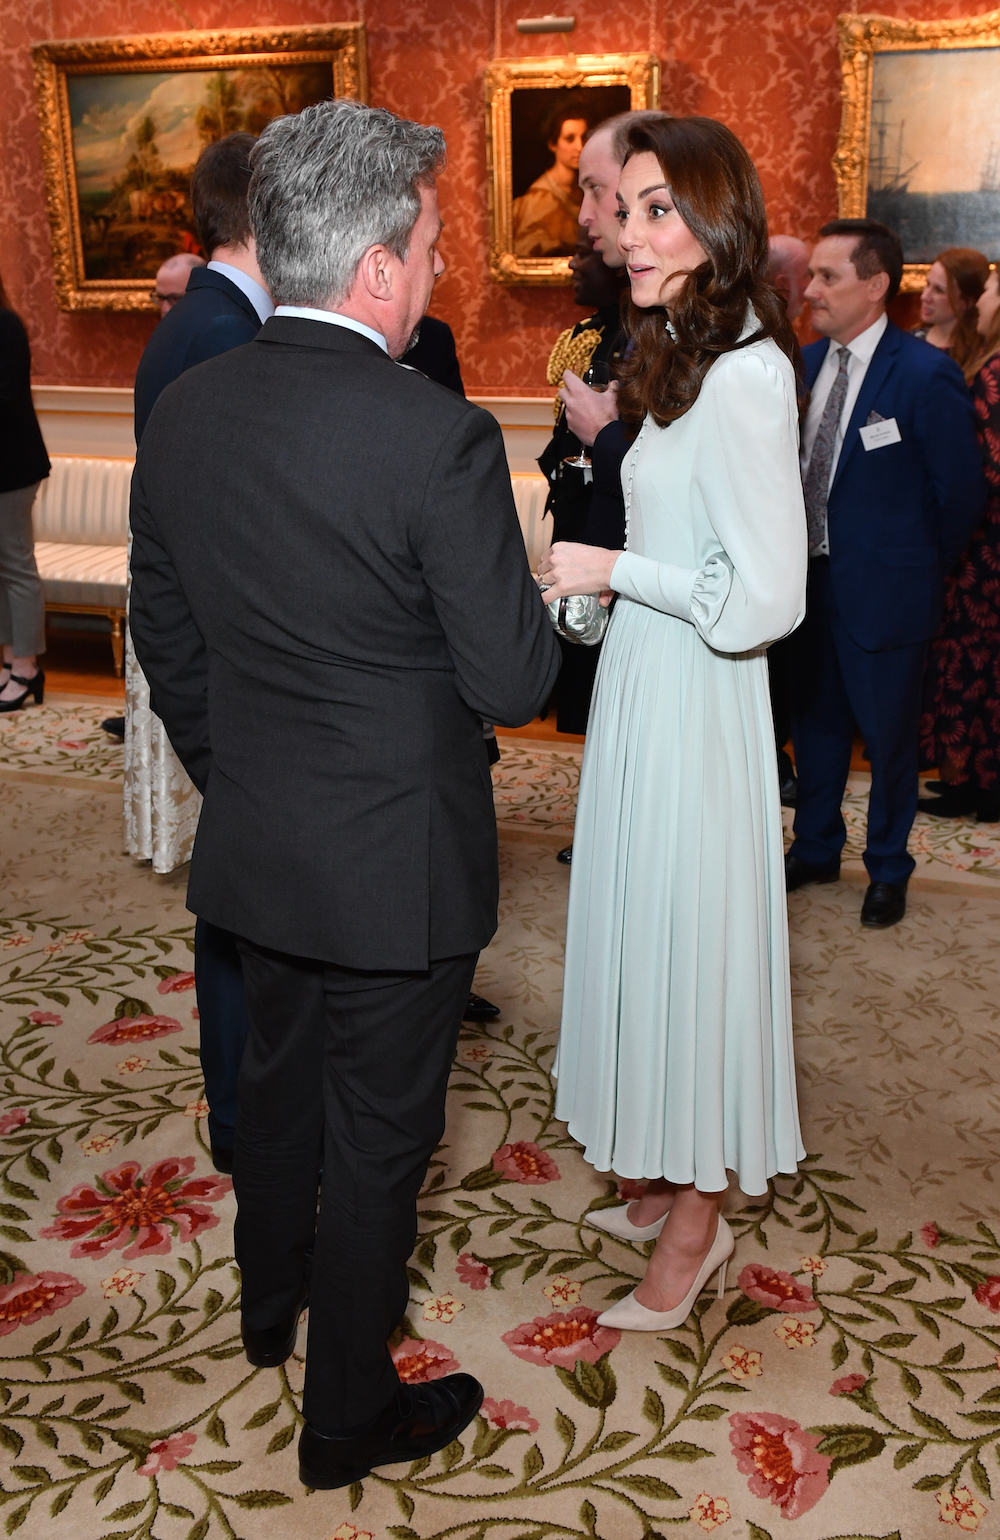 The Duchess of Cambridge opted for a chic blue dress